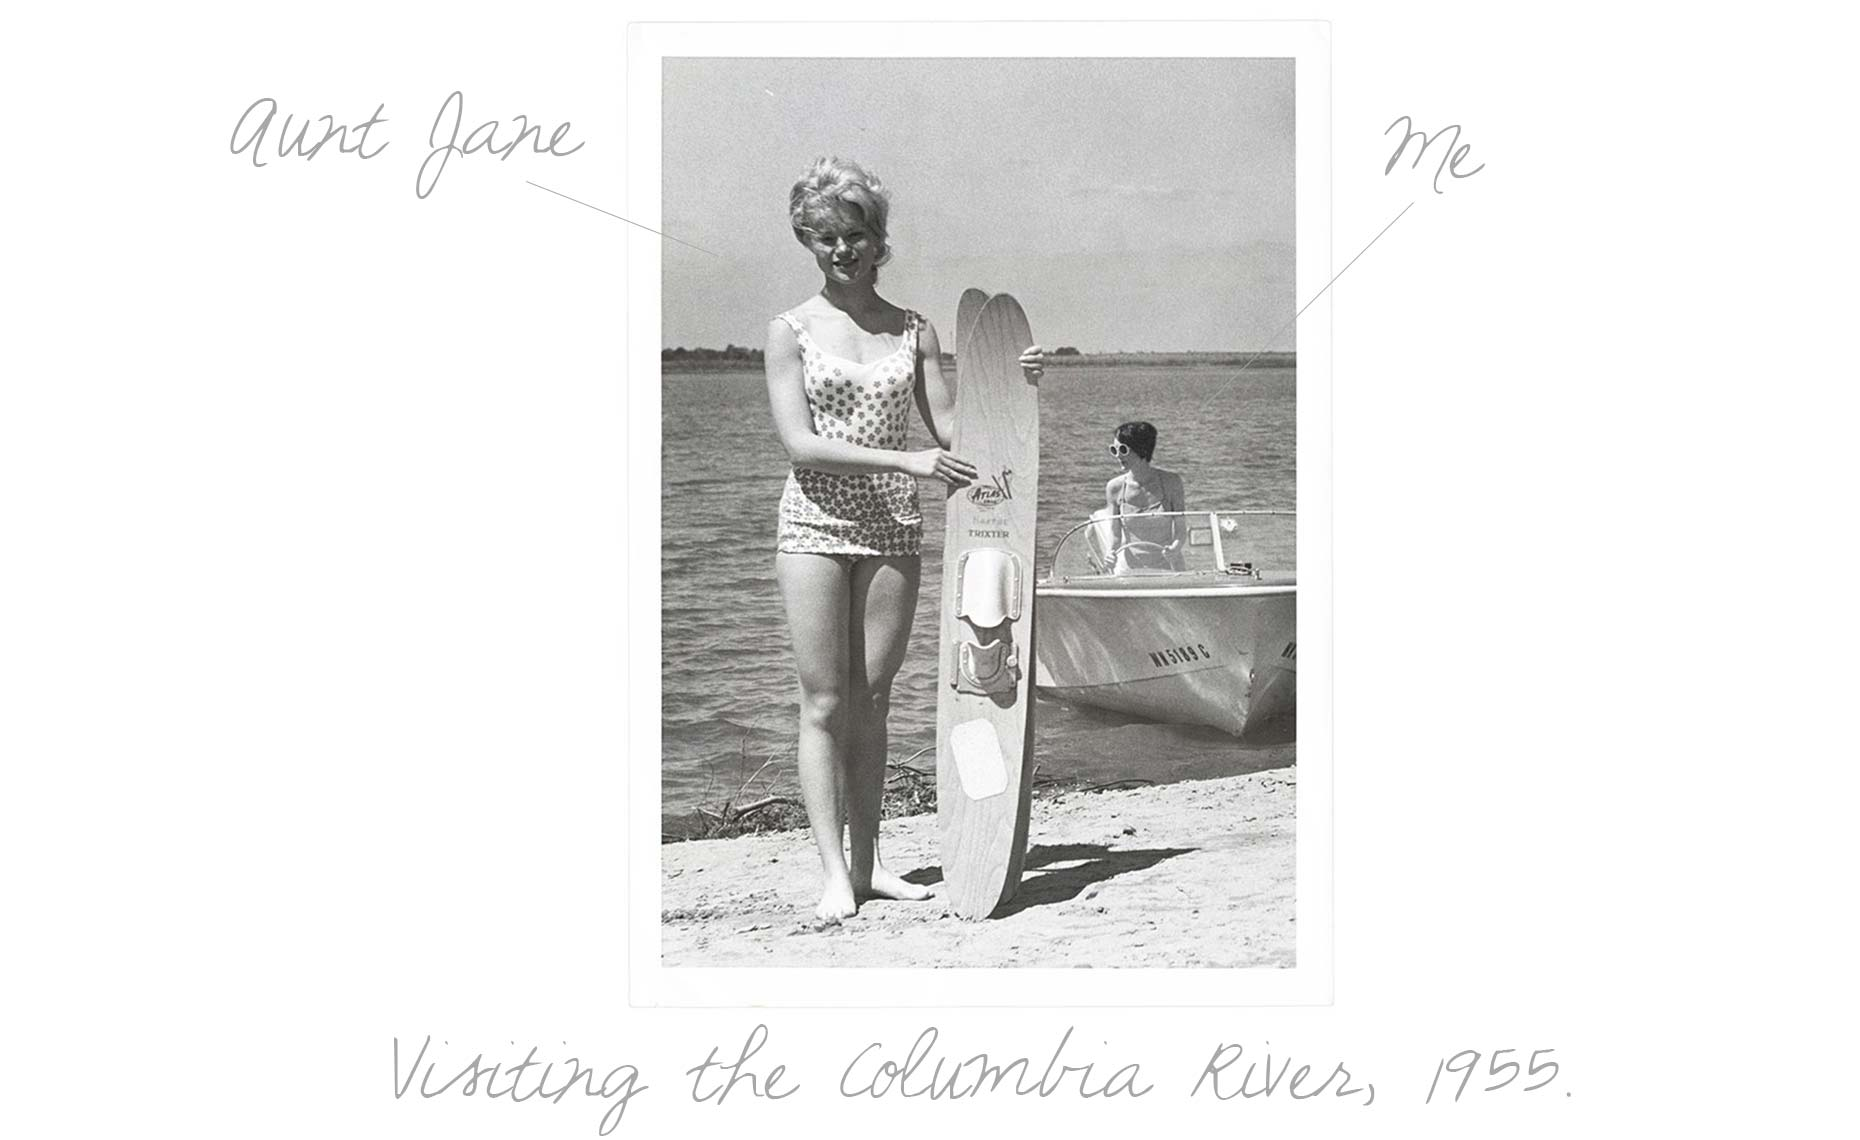 Visiting Jane Columbia River 1955 txt